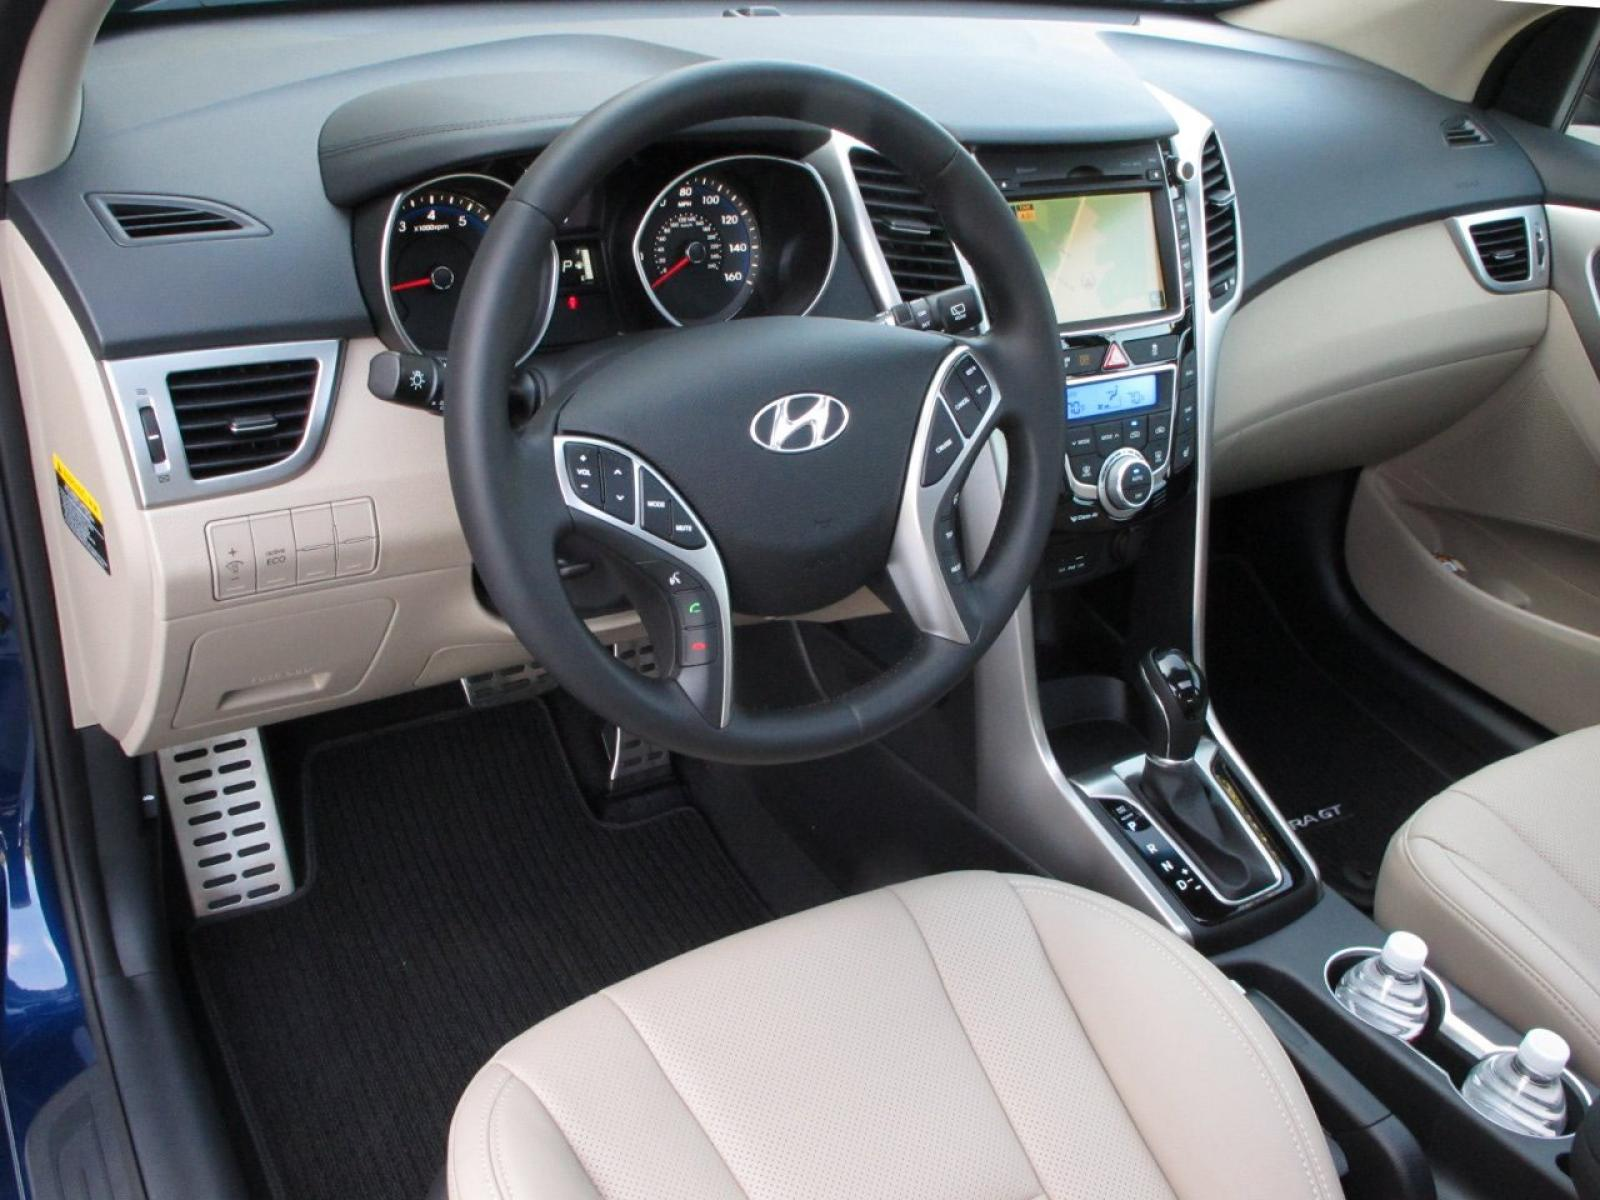 truth elantra l hyundai the alex courtesy gt review video picture cars exterior of about dykes